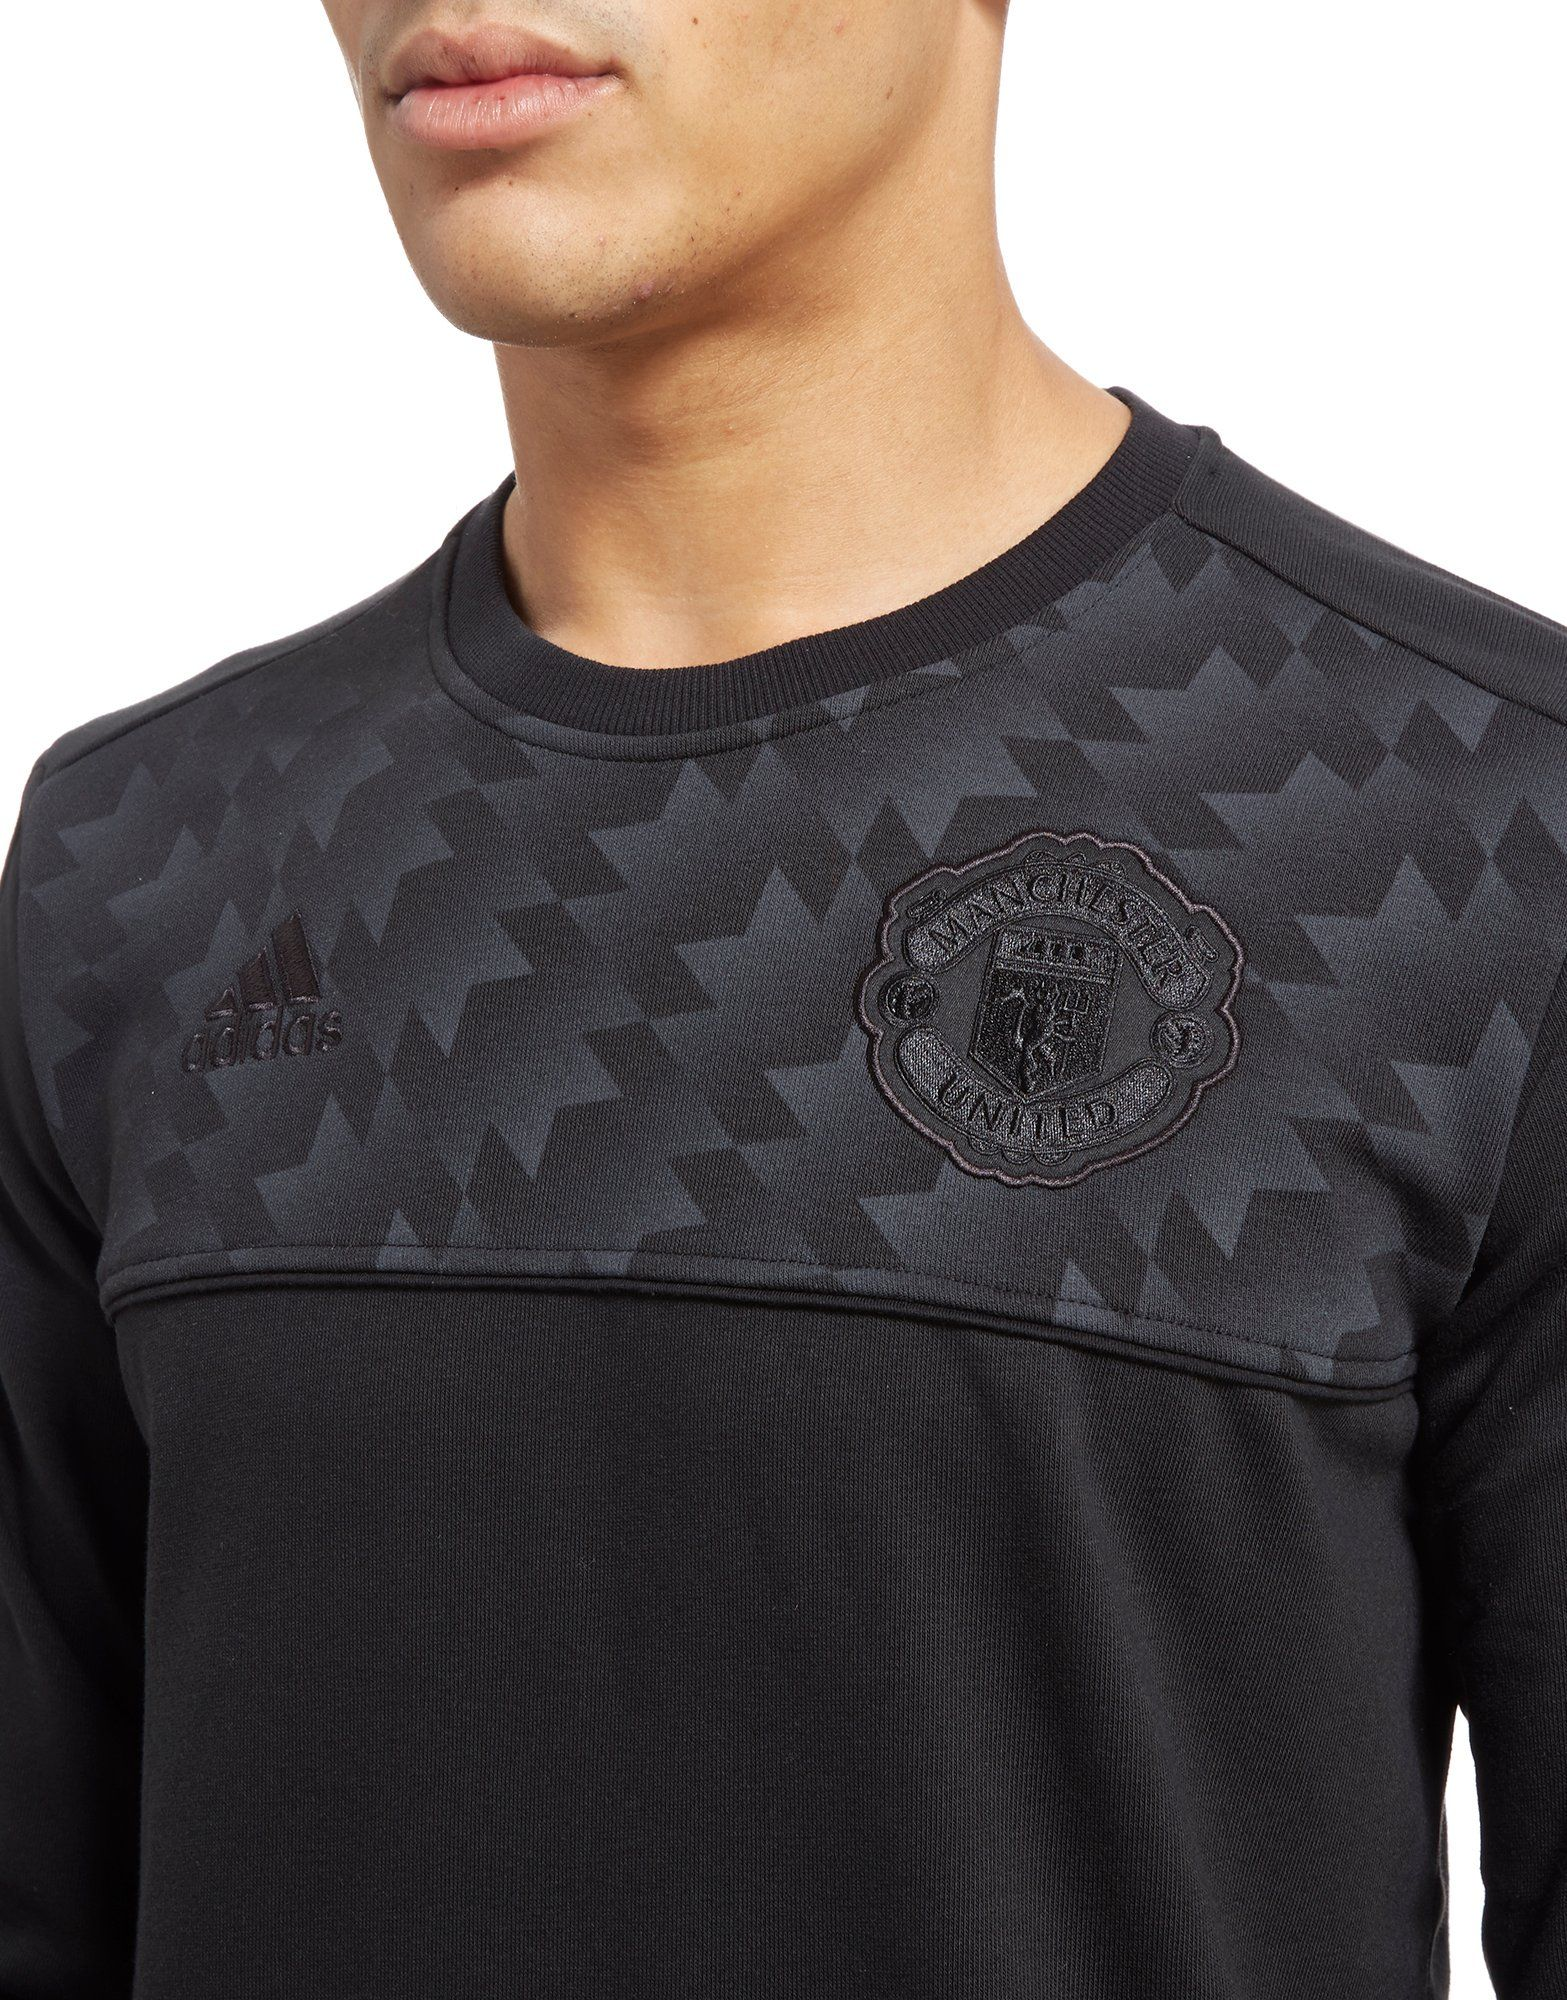 adidas Manchester Utd 2017 Seasonal Specials Sweatshirt